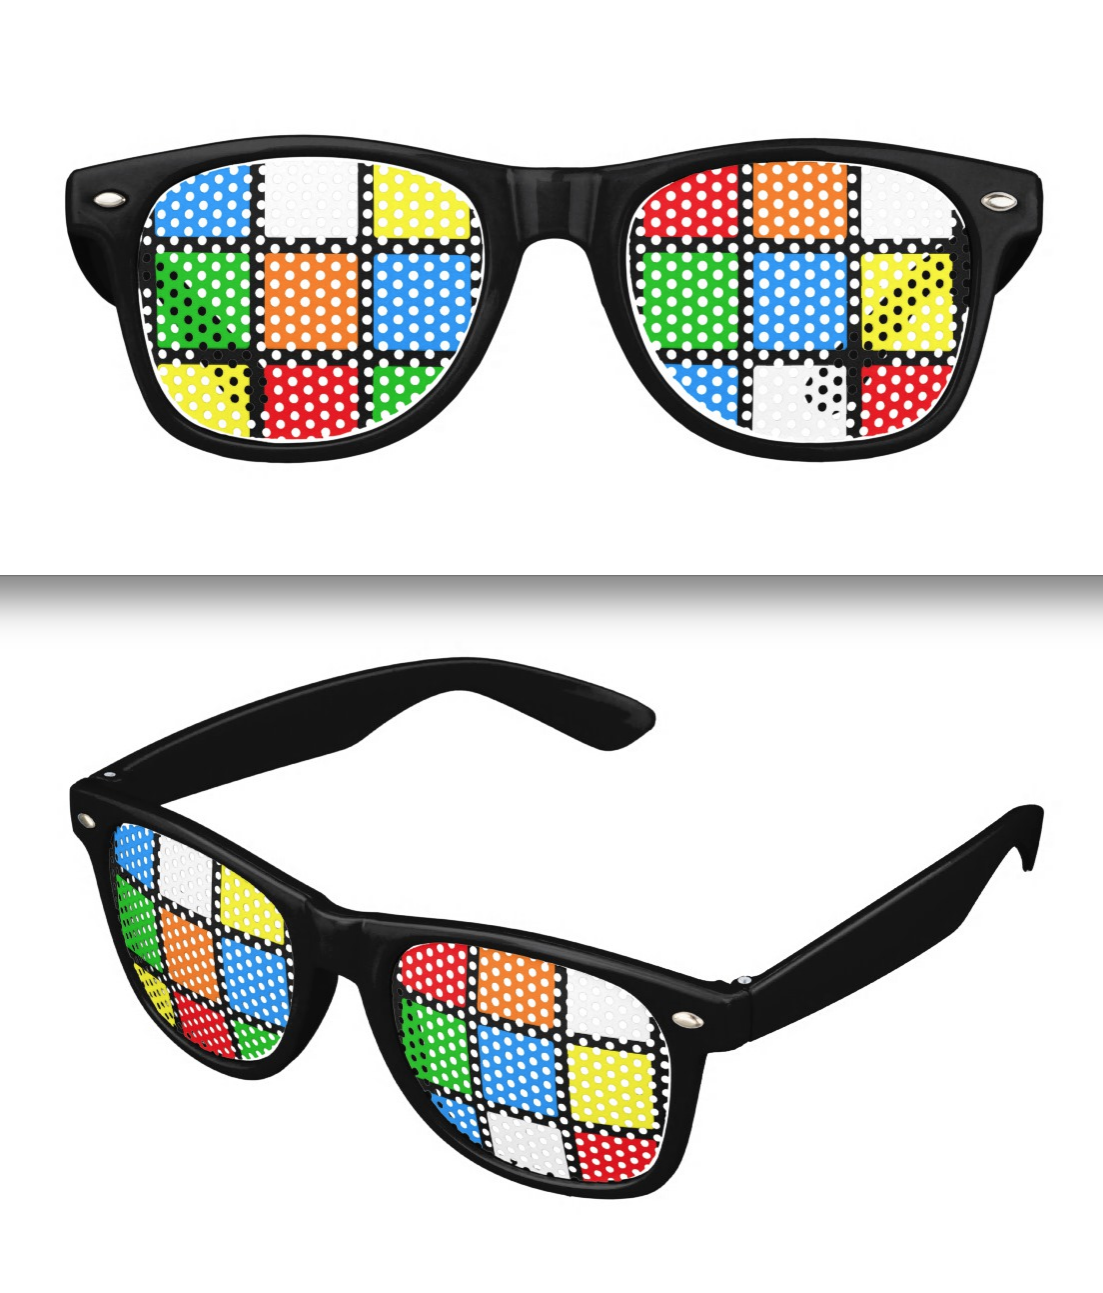 9a806d576ebb Funny SUNGLASSES - RUBIK S CUBE -  sunglasses  glasses  rubrikscube  game   fun  funny  lol  puzzle  summer  summer2018  2018  spring  party   partyshades ...